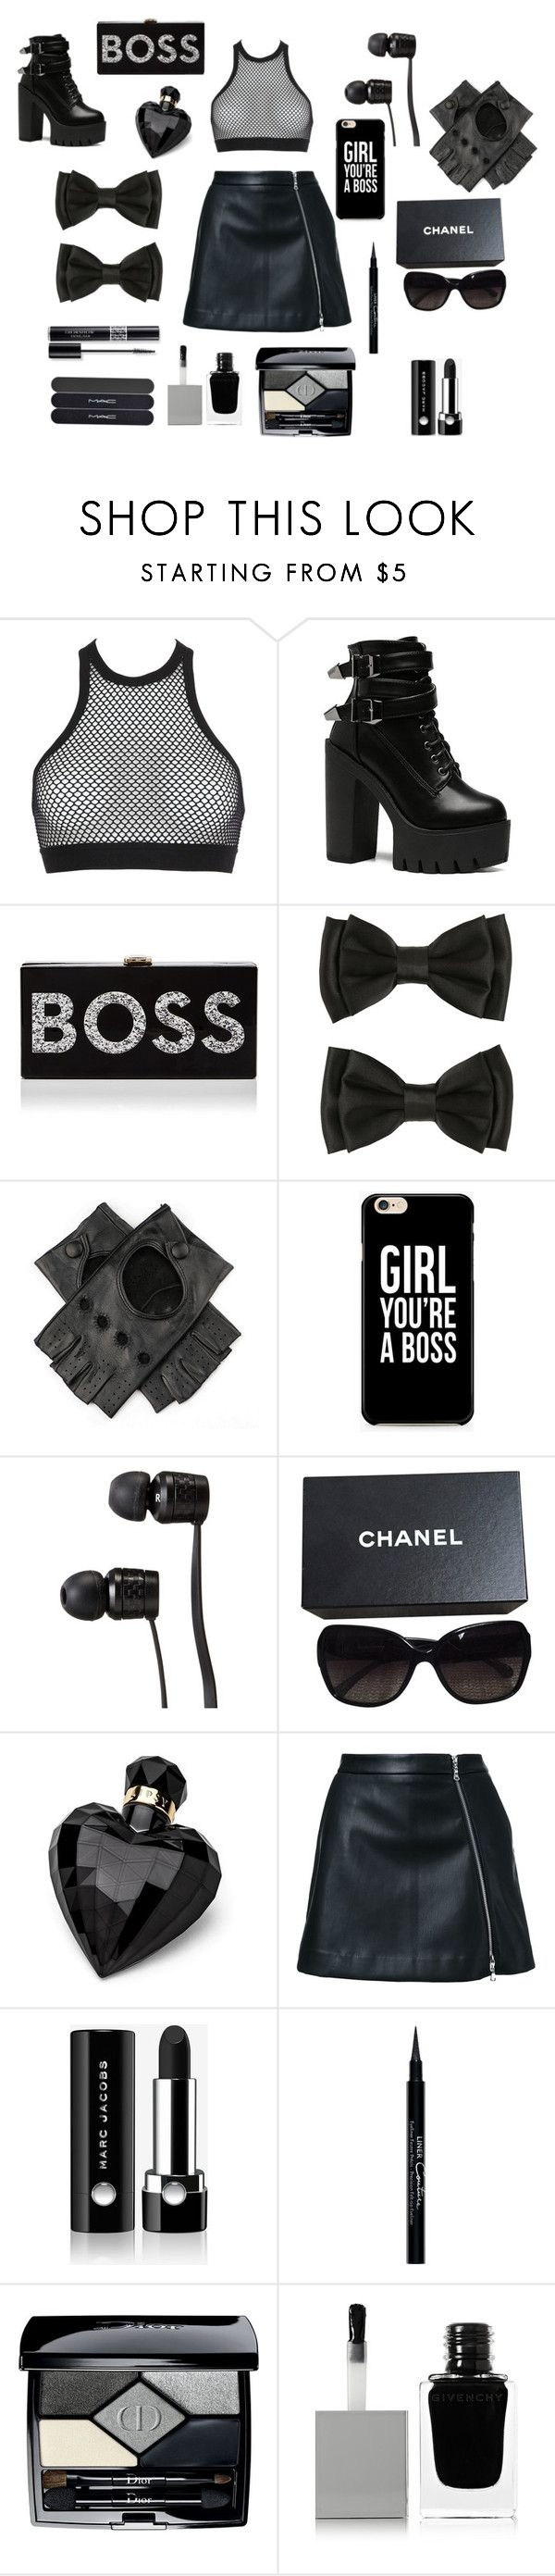 Vintage  Black is the Boss by carly liked on Polyvore featuring Dsquared Milly